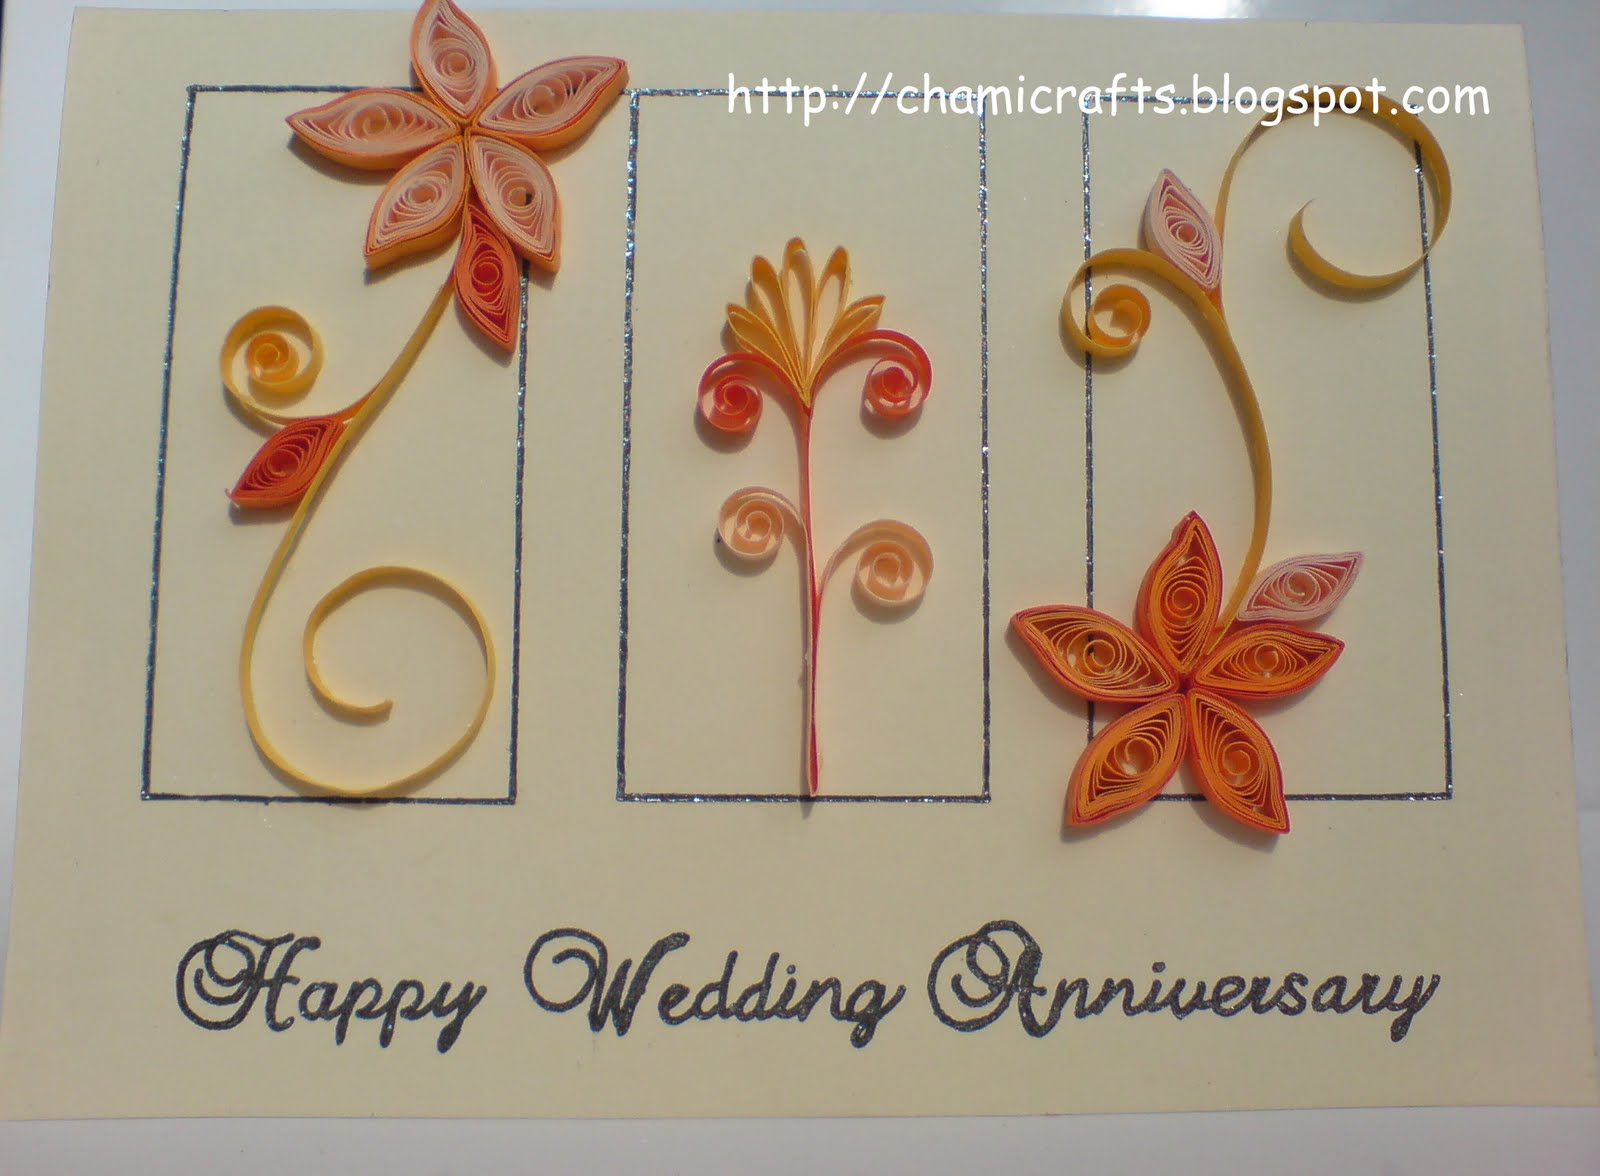 Chami crafts handmade greeting cards wedding anniversary card monday may 9 2011 m4hsunfo